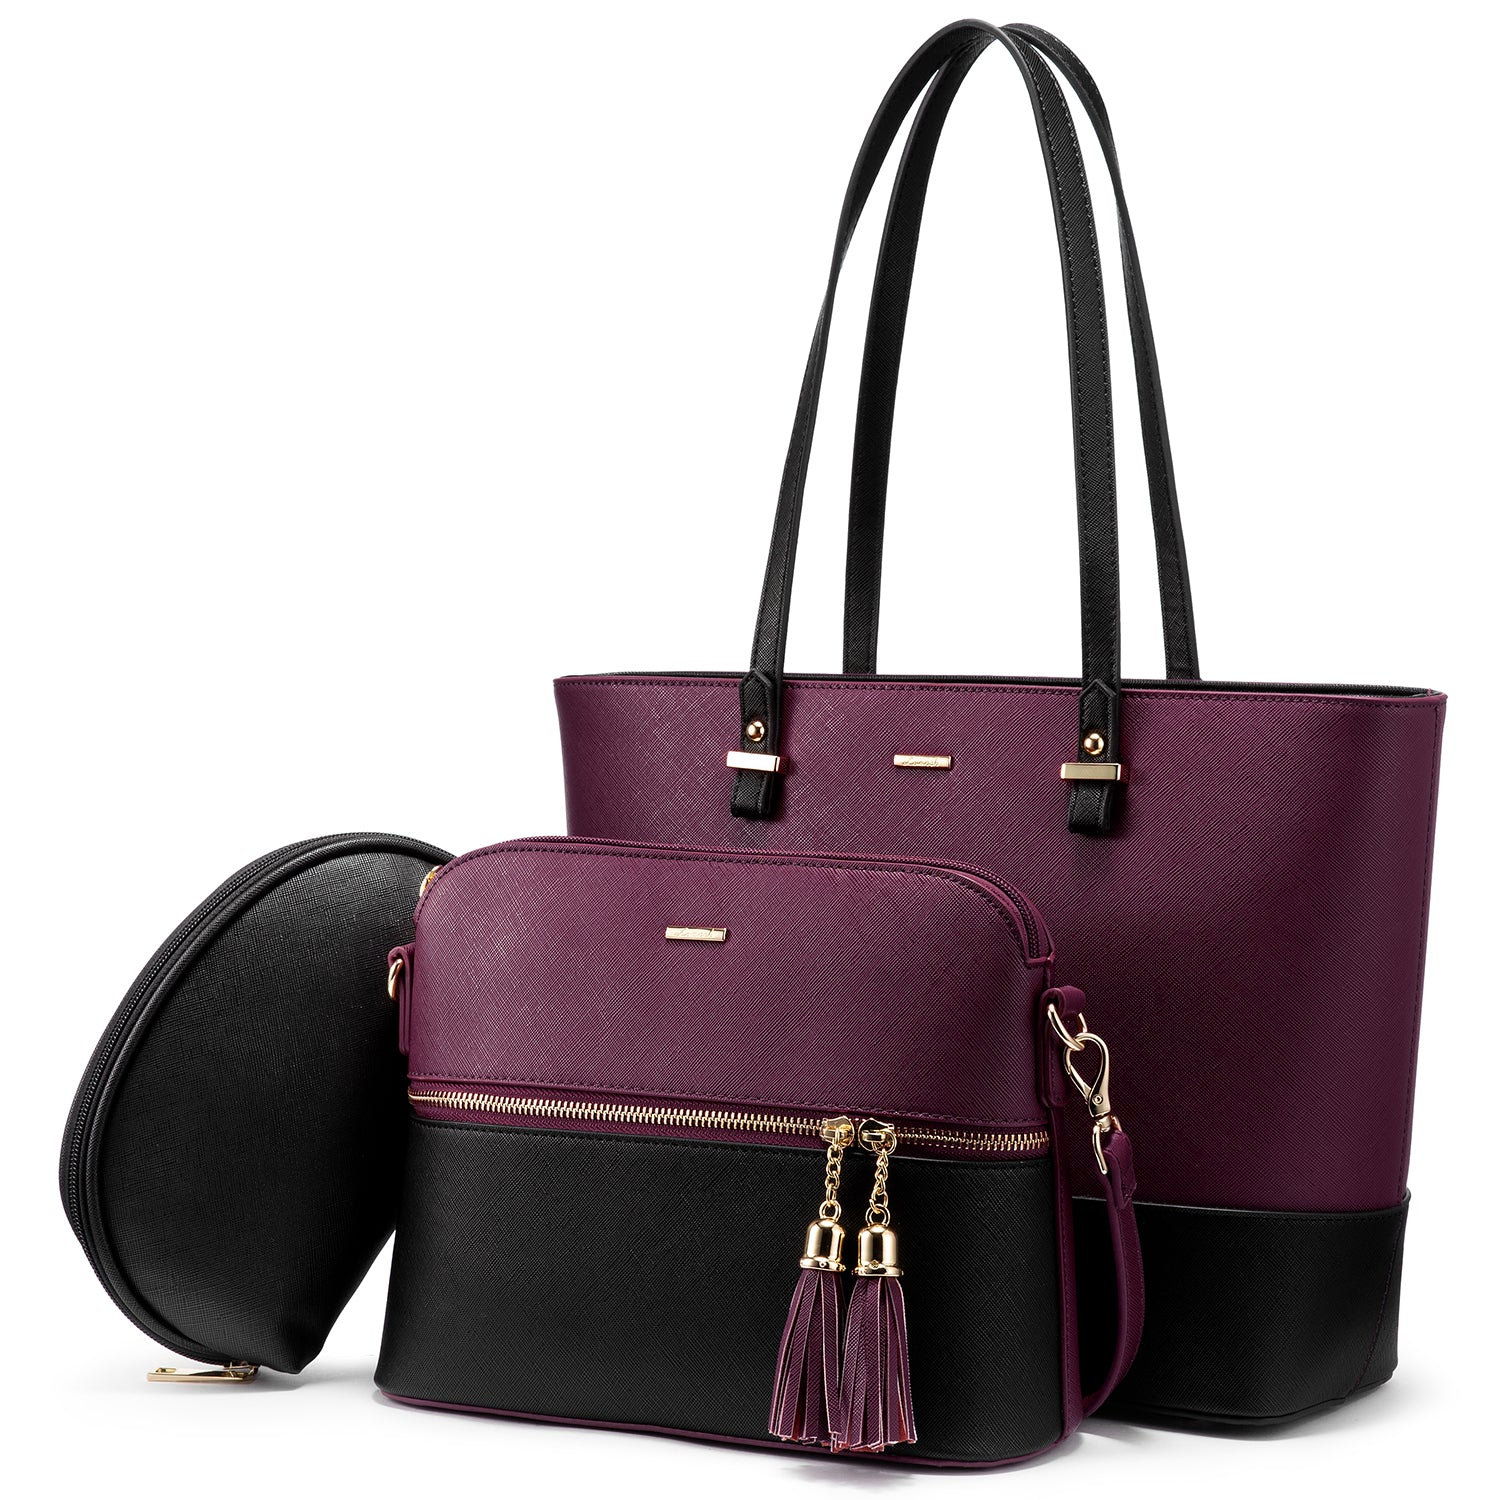 LOVEVOOK Tote Satchel Hobo 3pcs Handbag Purses Set